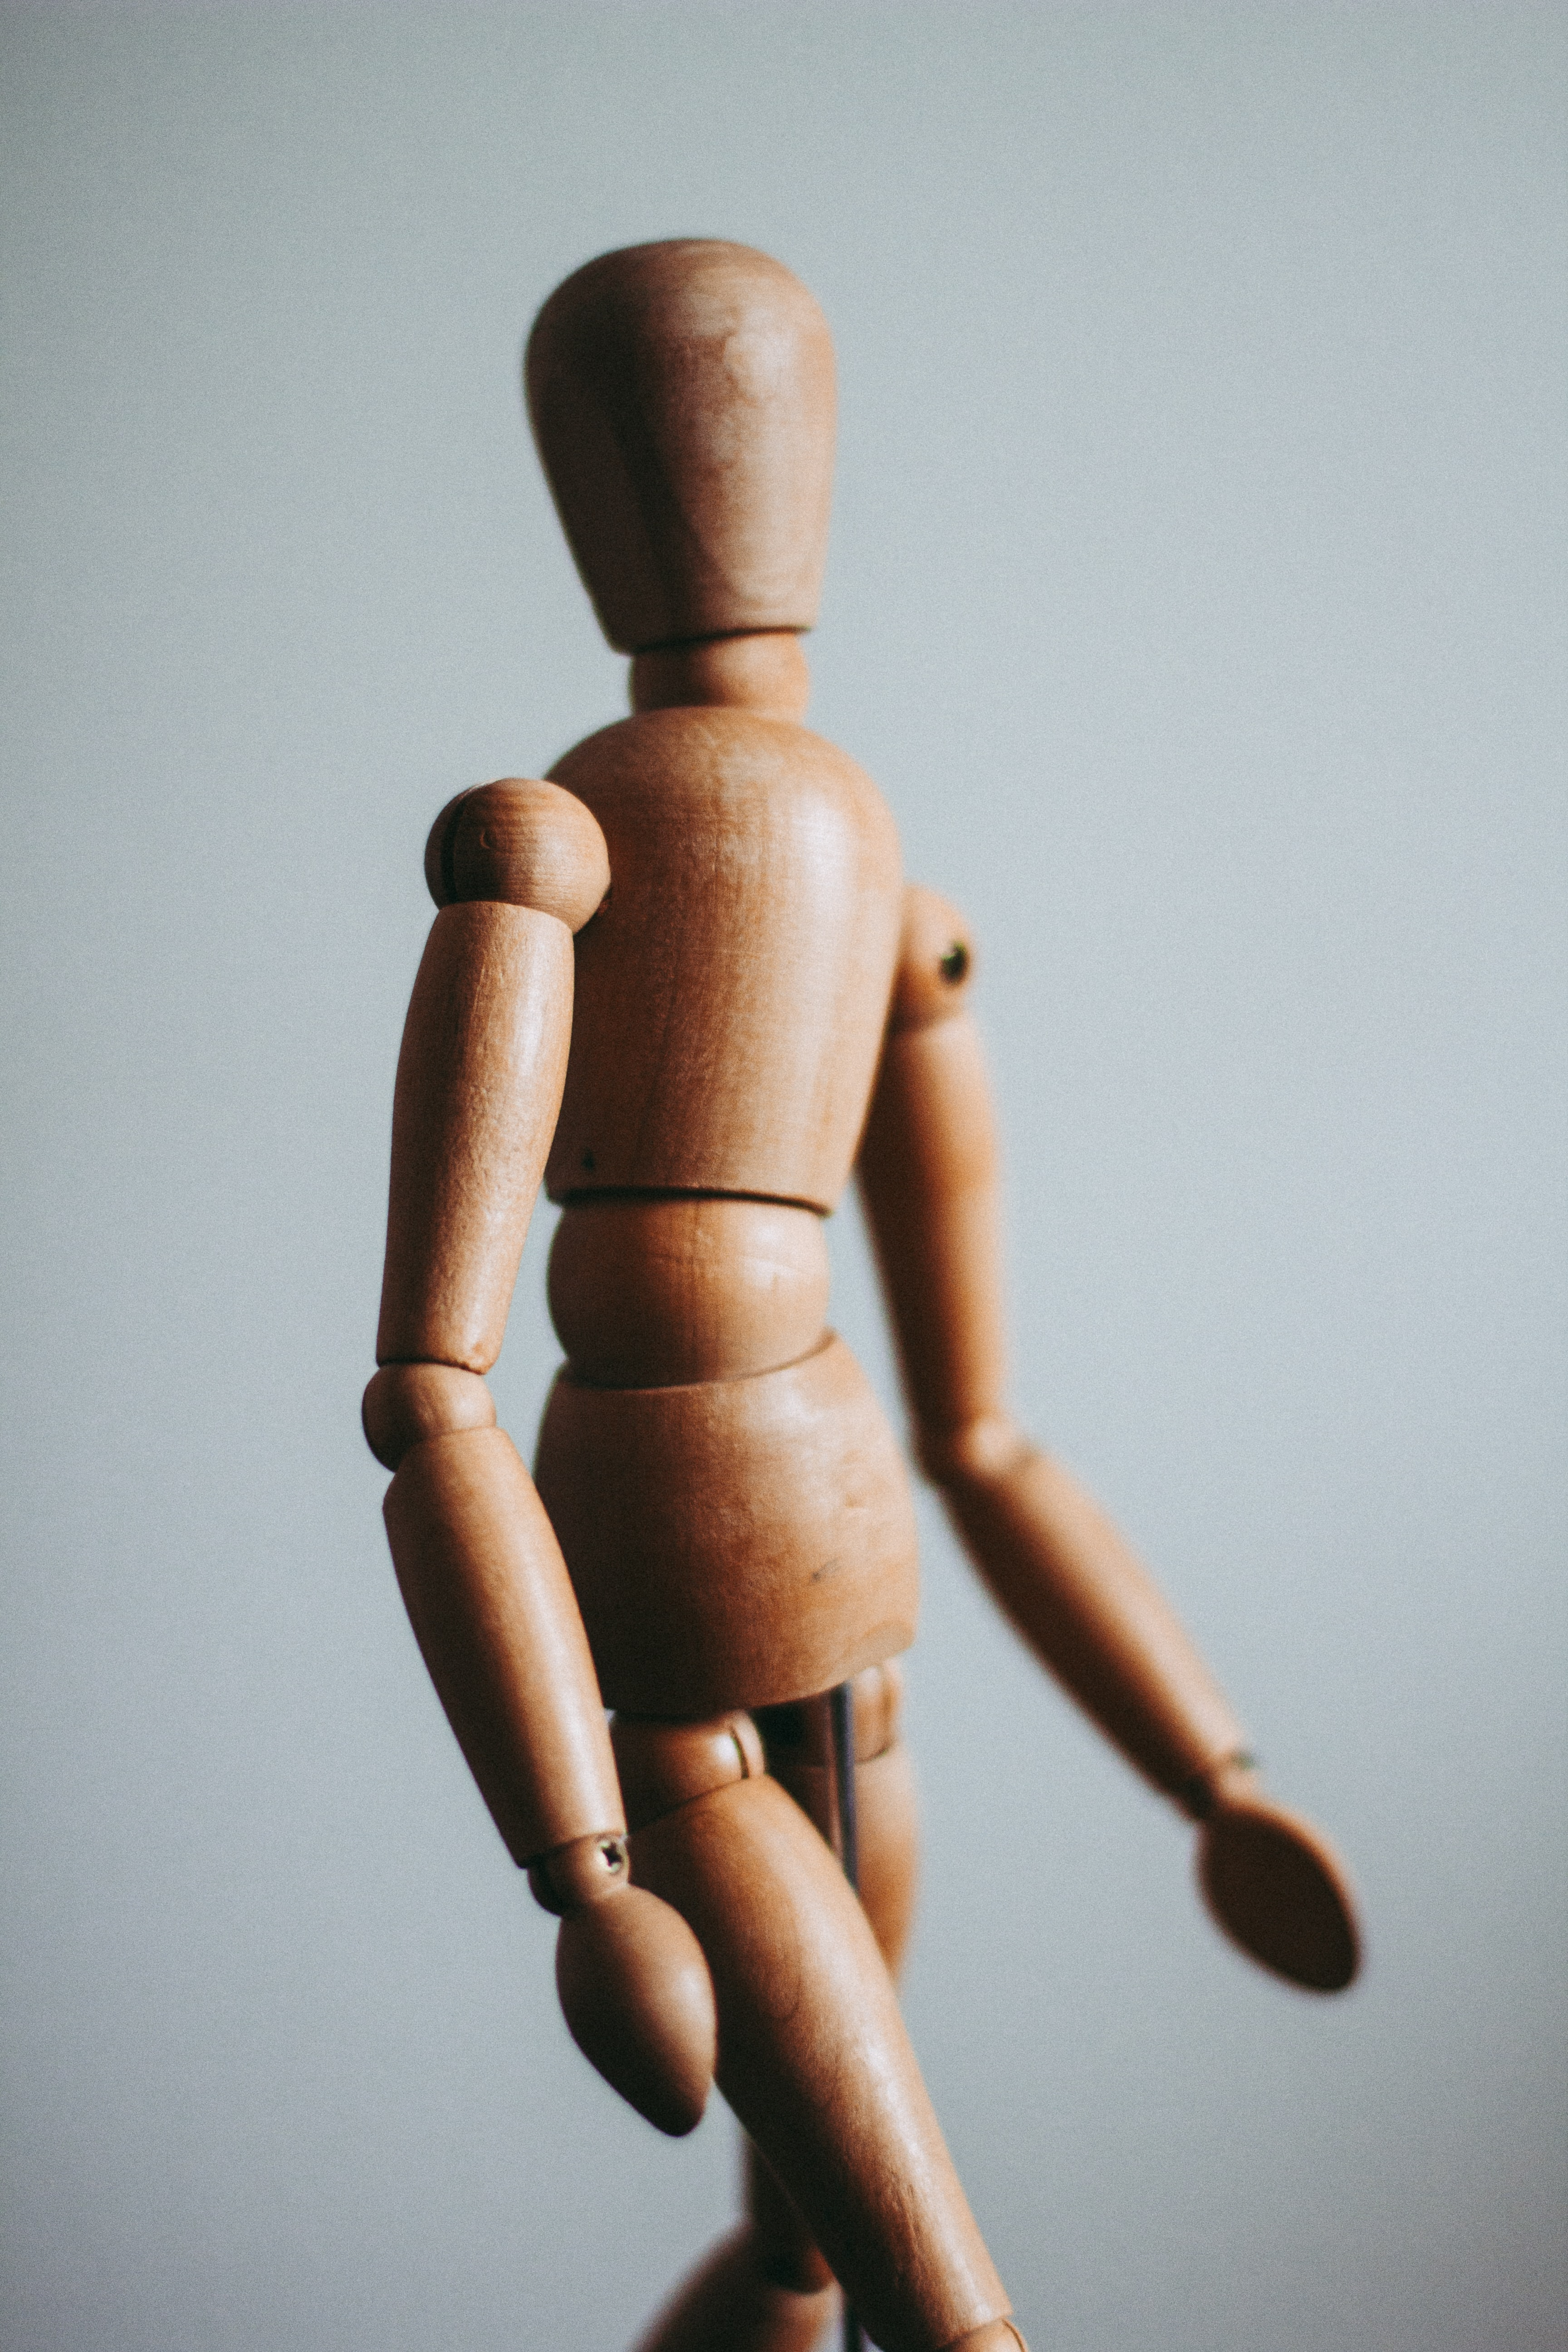 A wooden model of the human figure in Cologne